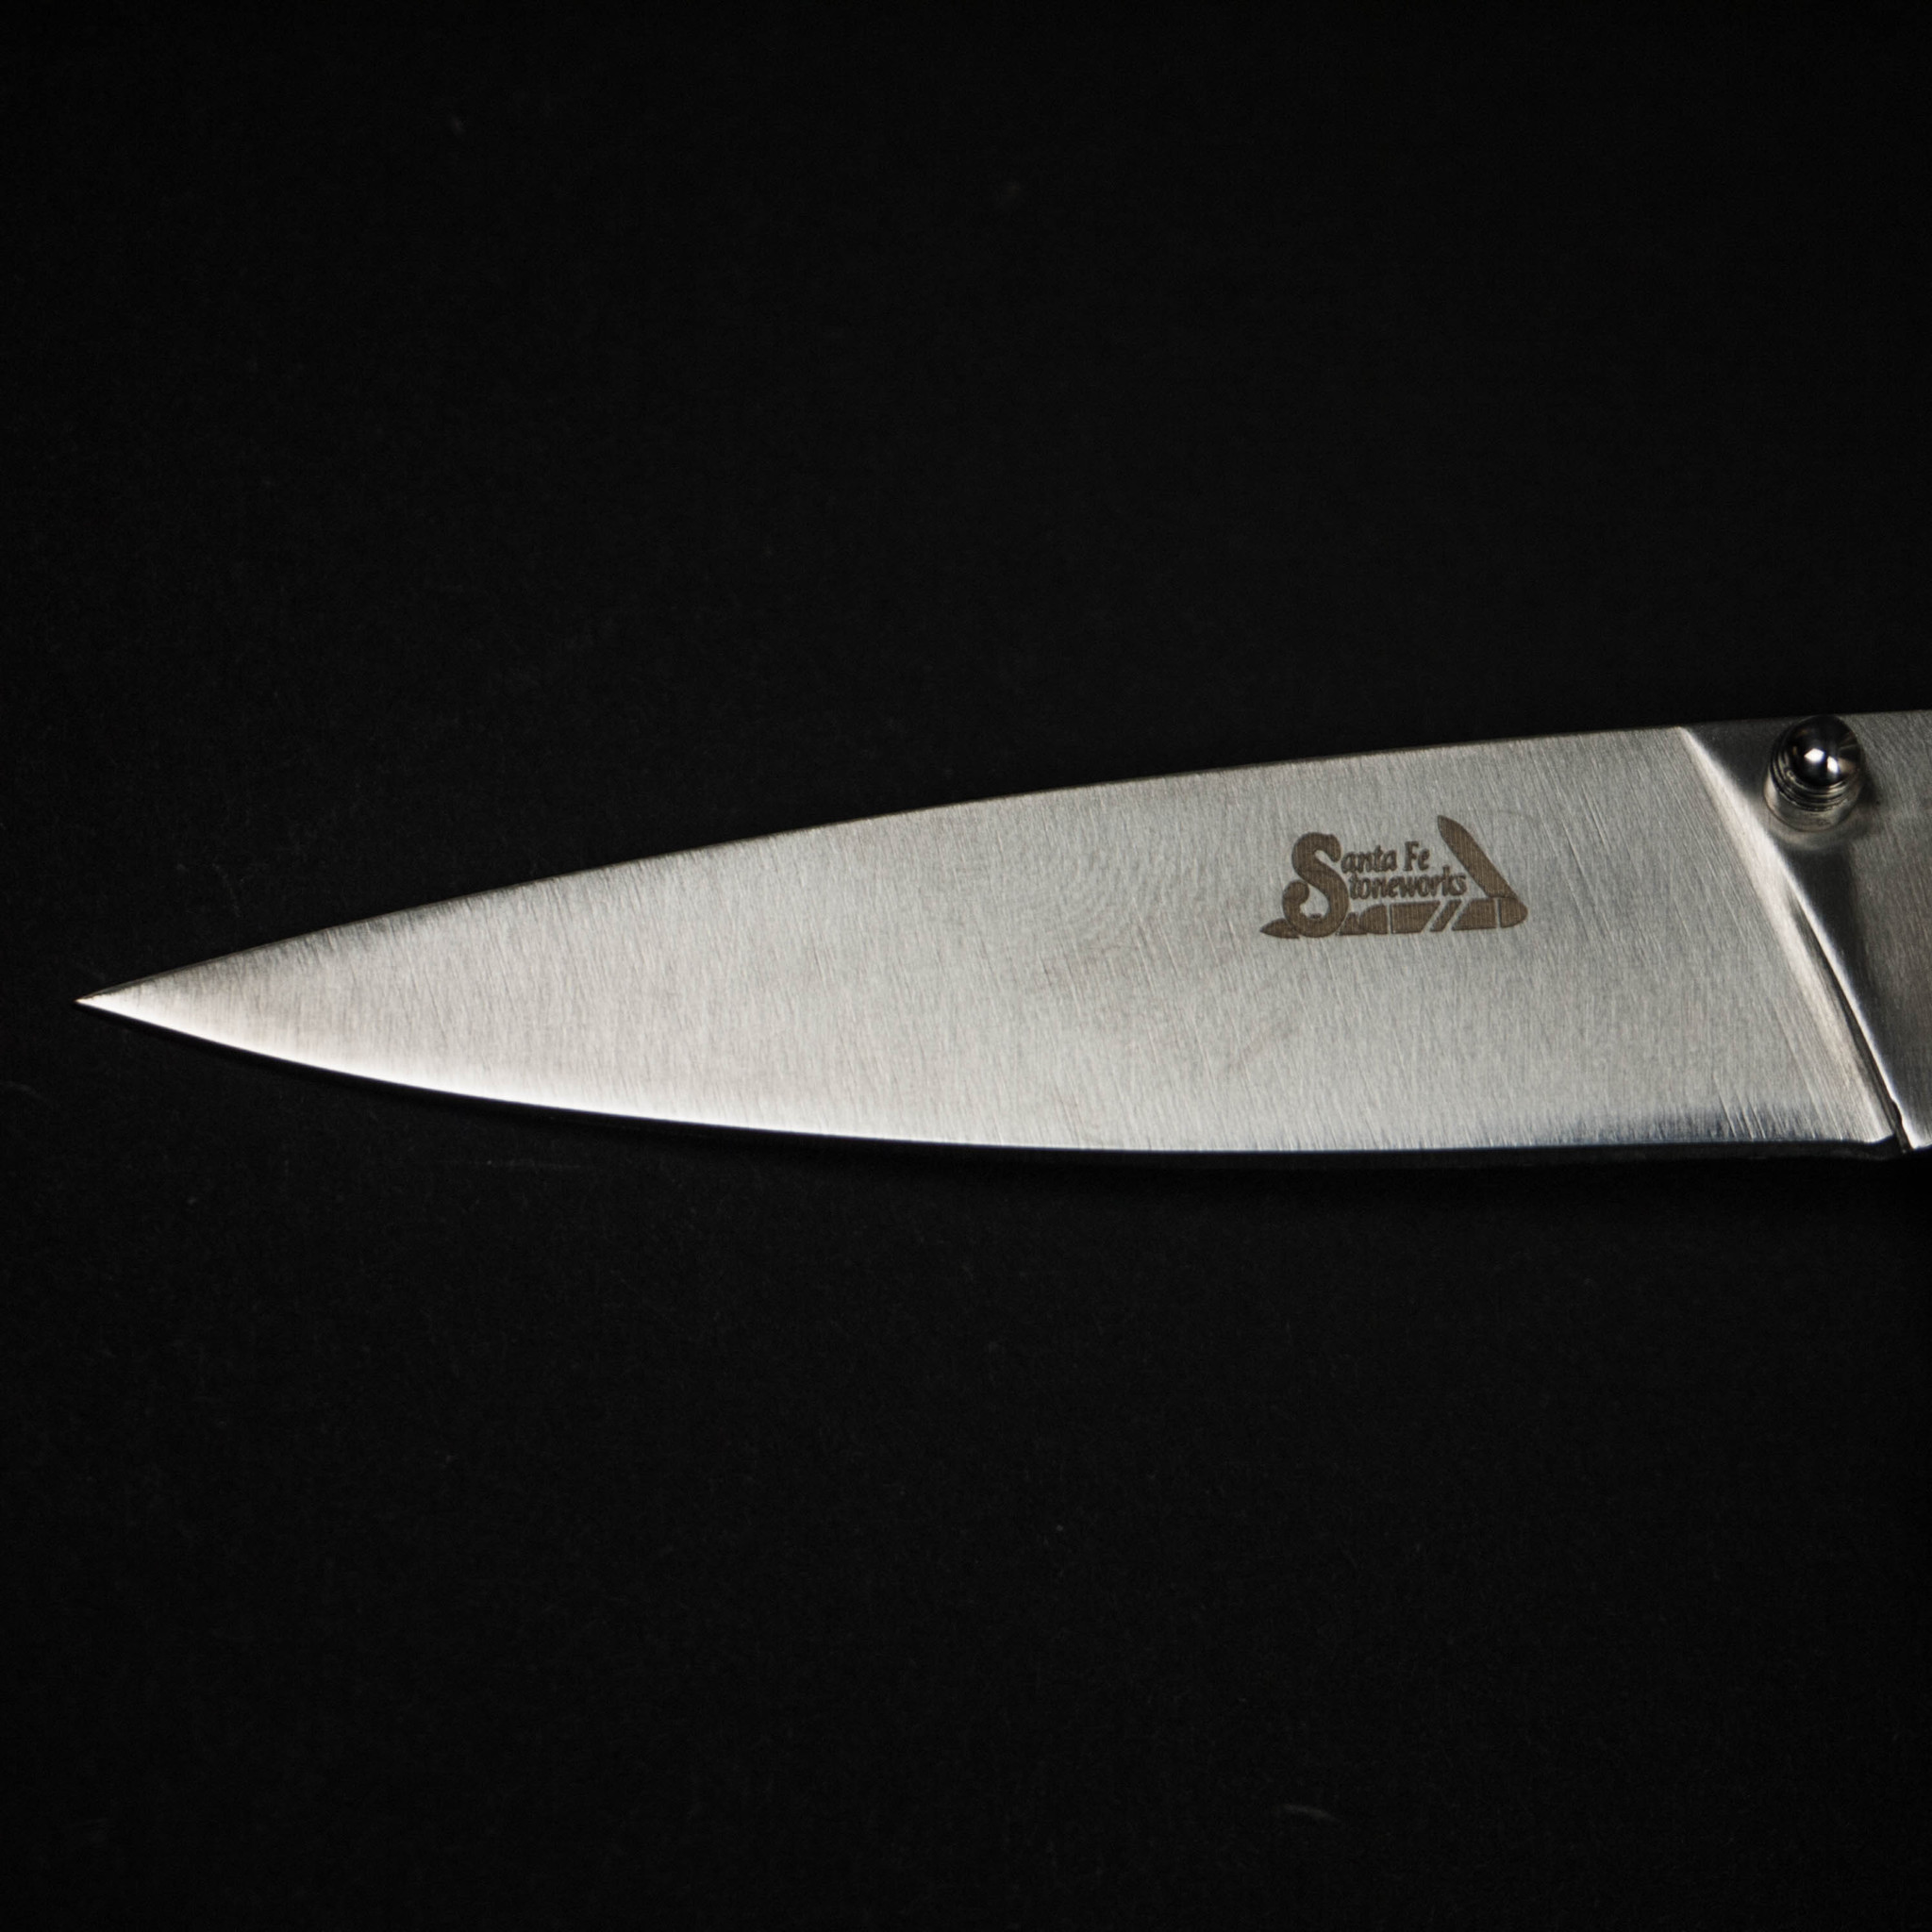 Magnificent santa fe stoneworks for kitchen and dining sets with santa fe stoneworks knives